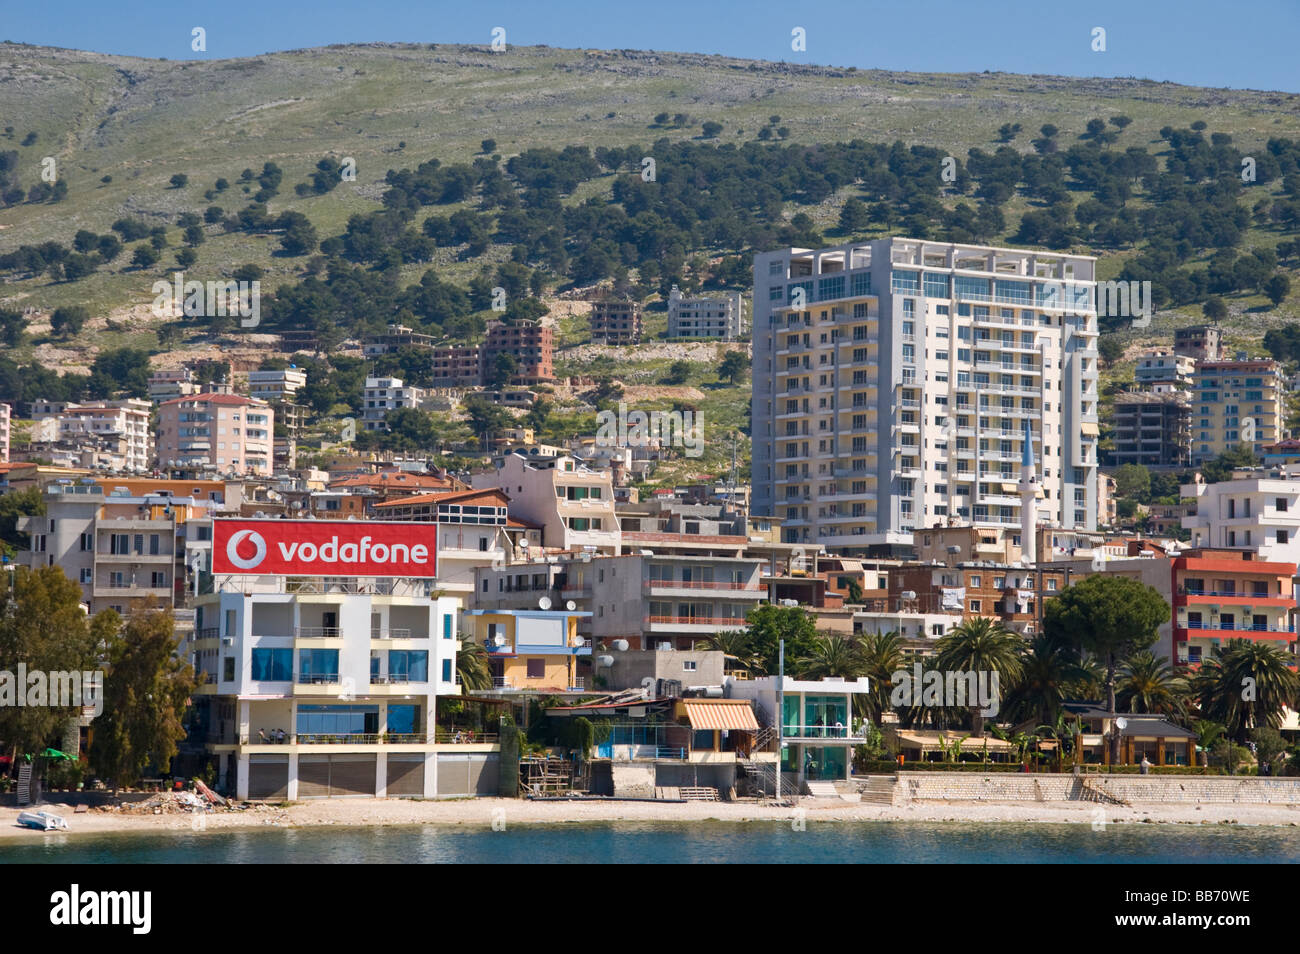 First thing you notice approaching the city of Saranda Republic of Albania by ferry is the enormous rooftop vodafone - Stock Image